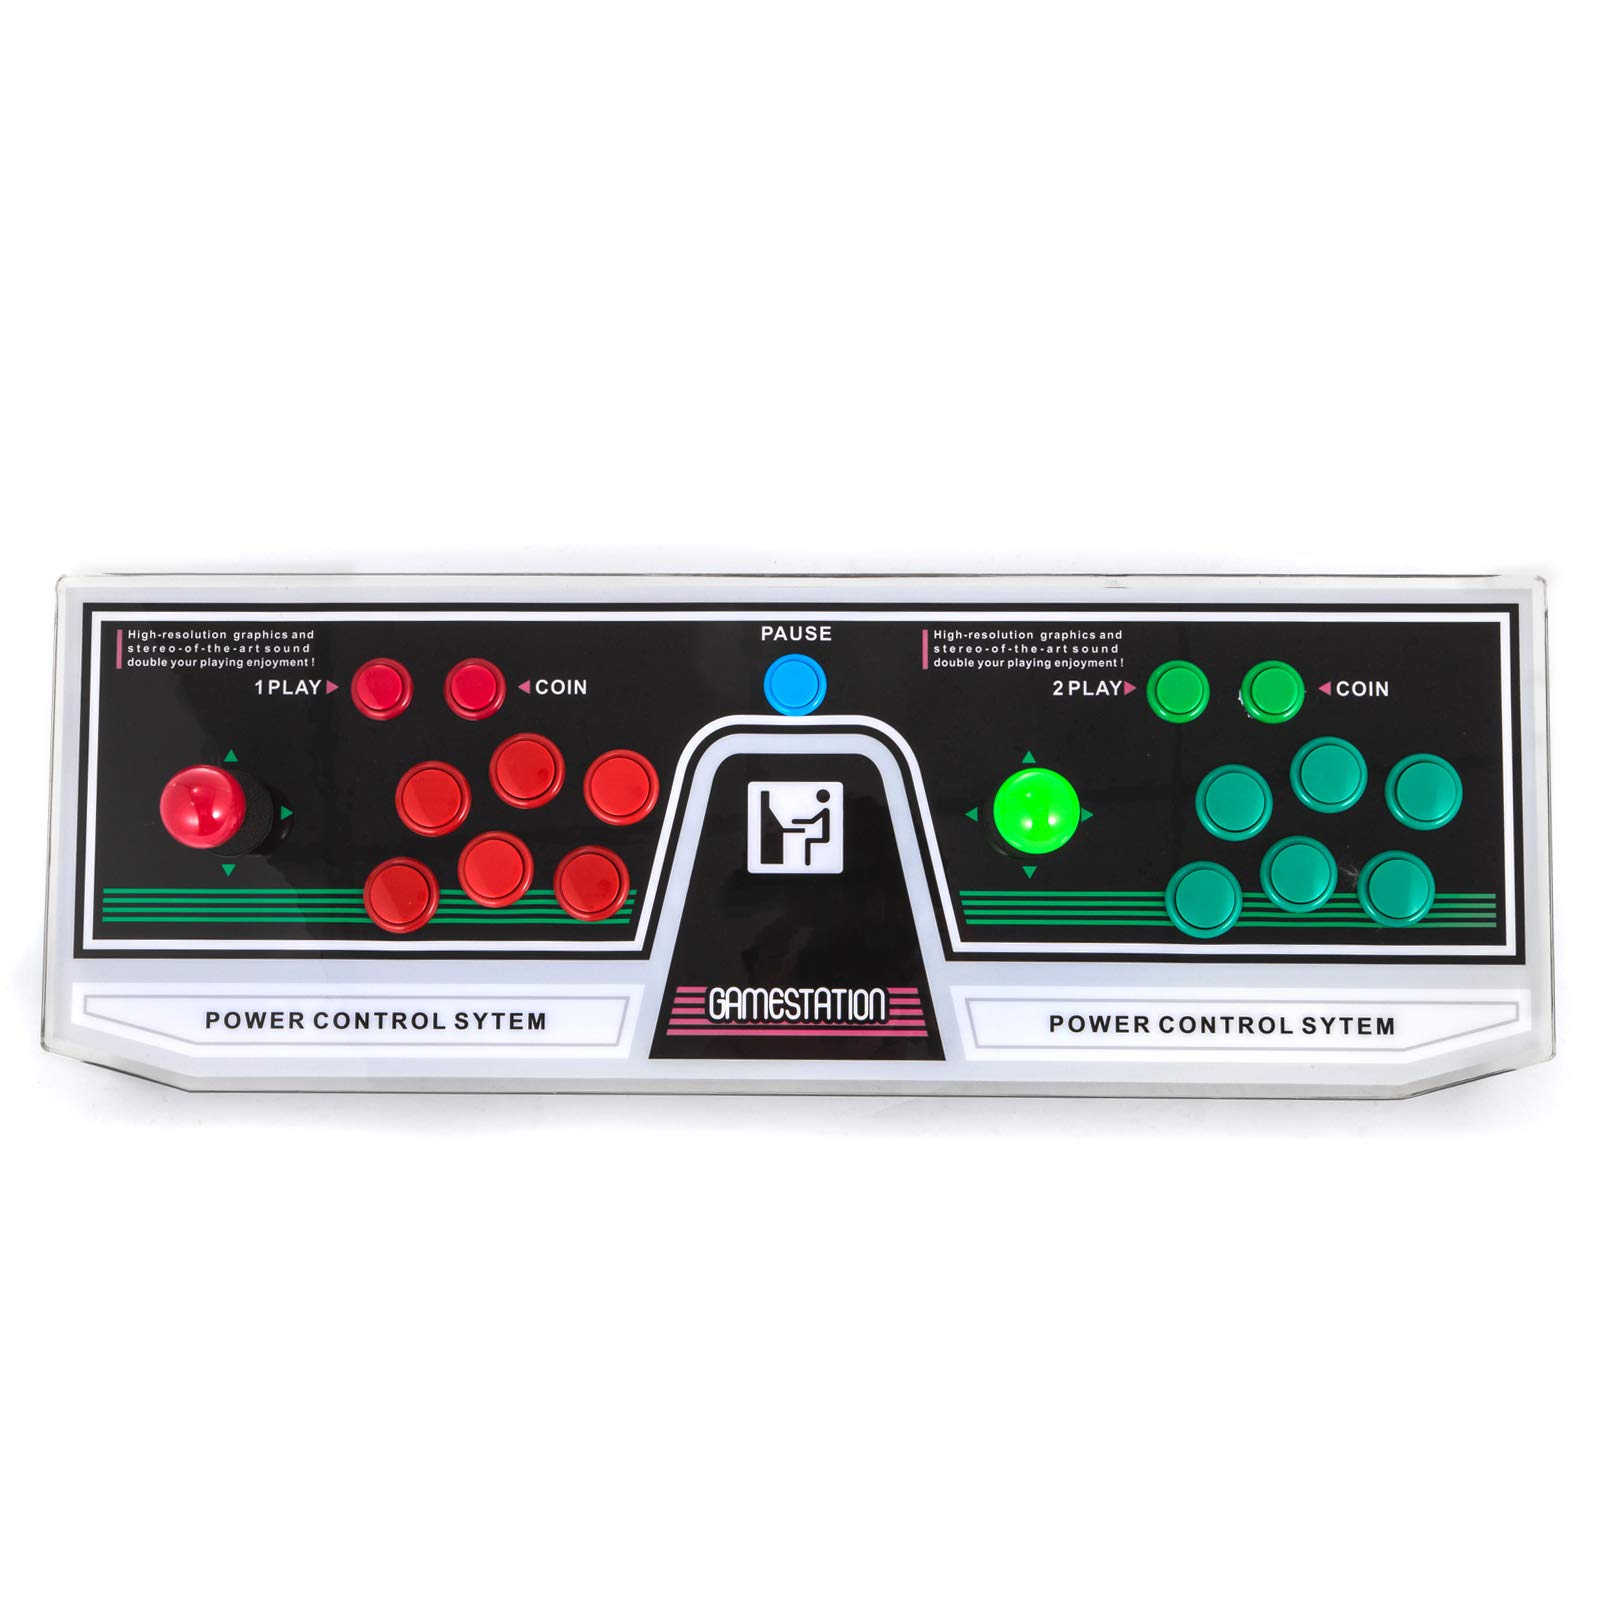 Happybuy Arcade Game Console 1280P Games 1500 in 1 Pandora's Box 2 Players Arcade Machine with Arcade Joystick Support Expand Games for PC / Laptop / TV / PS4 by Happybuy (Image #3)